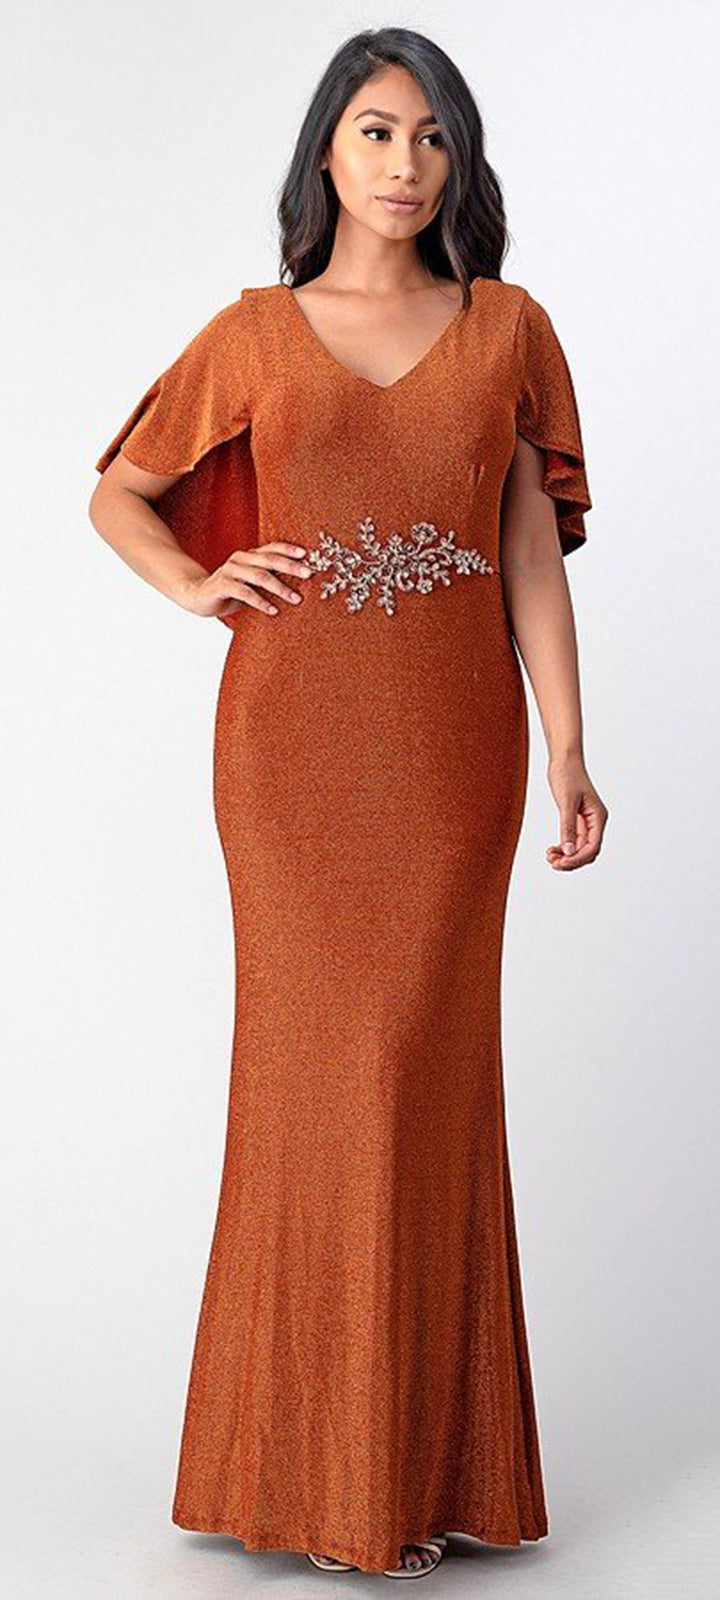 Cape Sleeves Evening Gown - LAMG8108